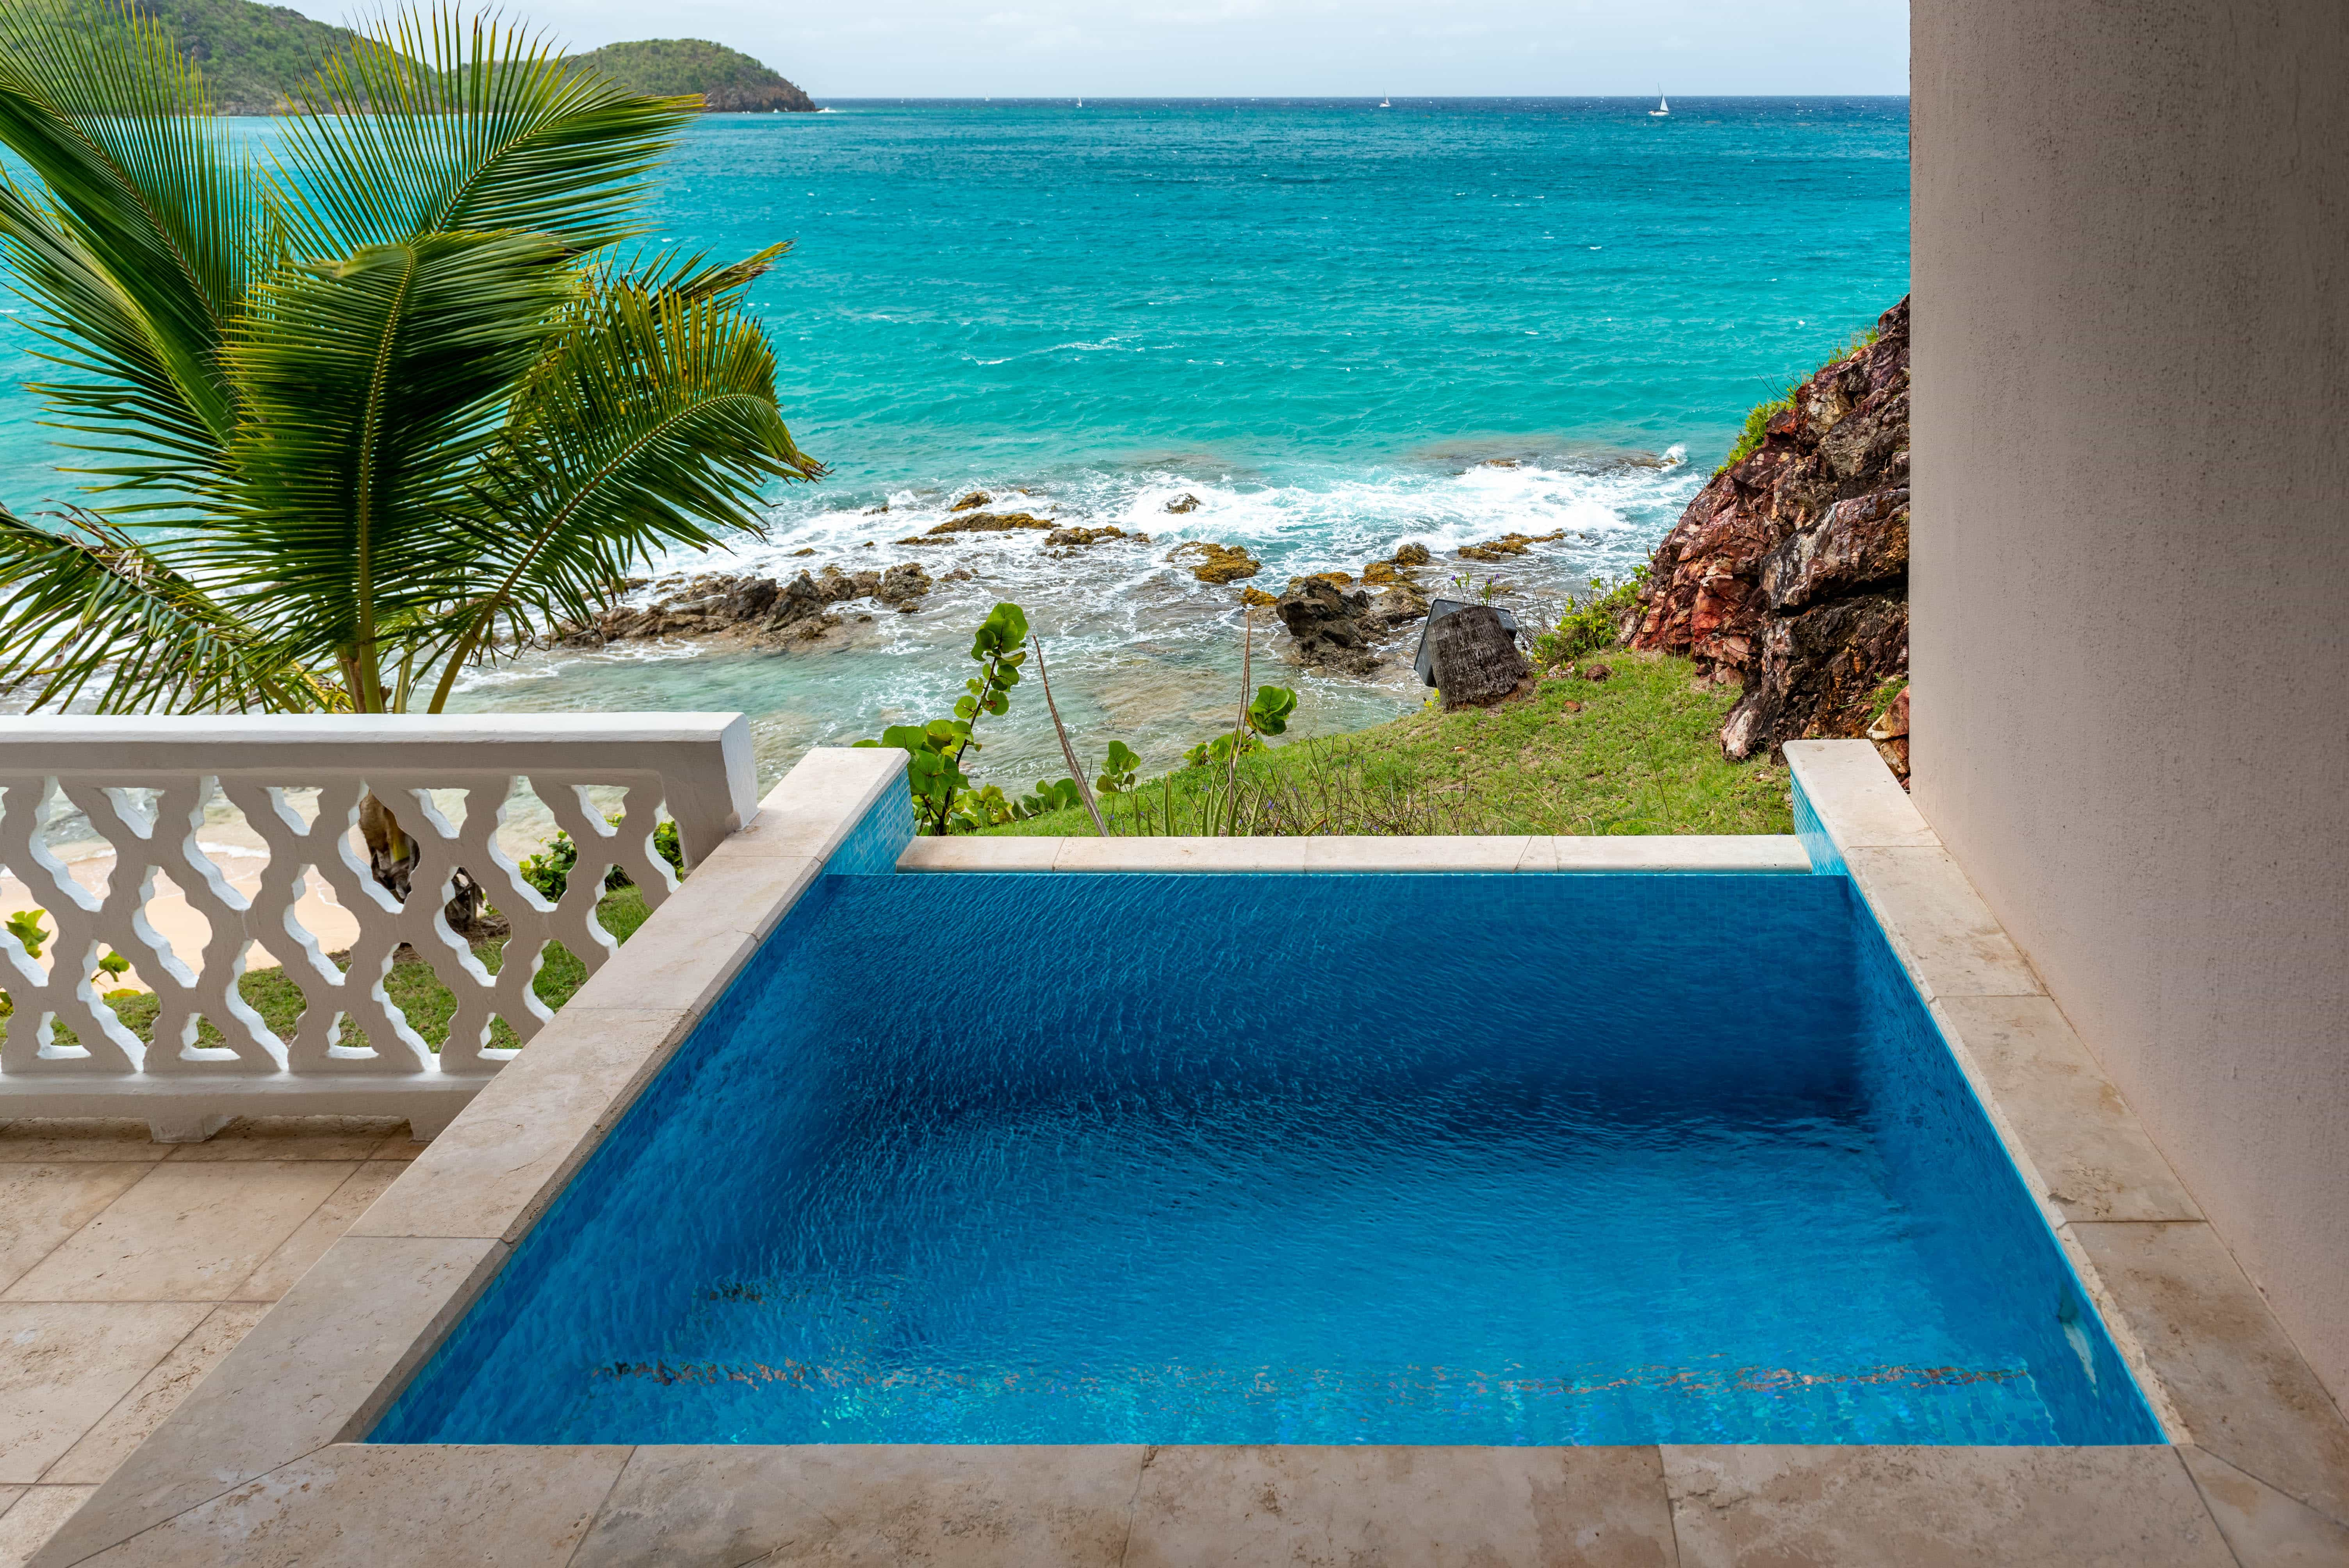 Some newly renovated rooms have plunge pools you may never want to leave.